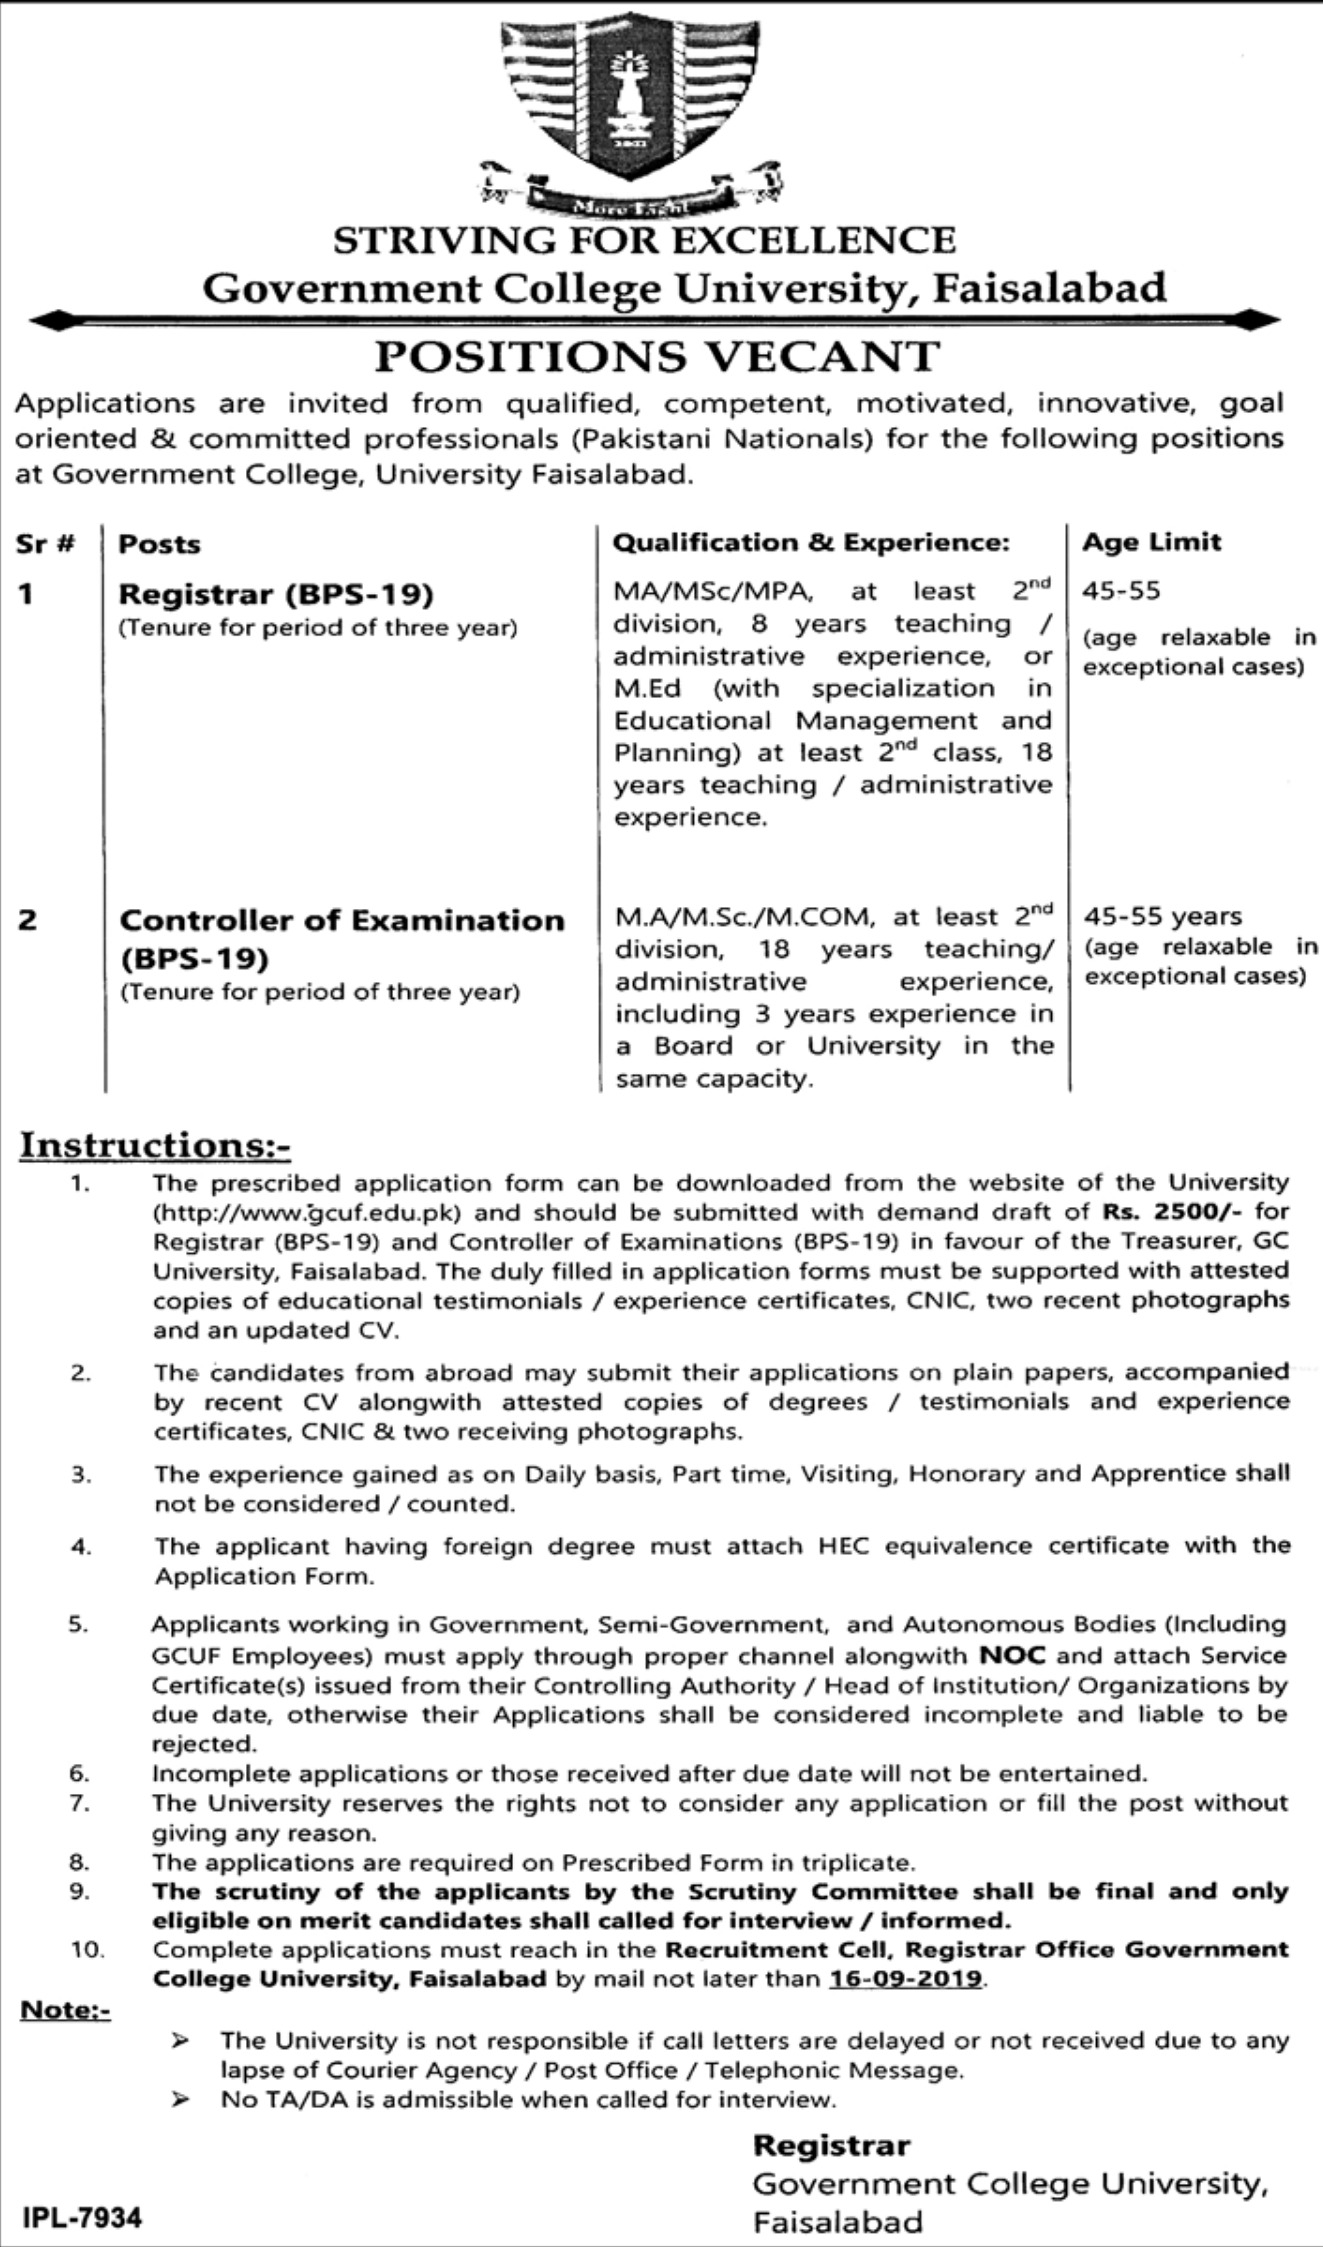 Government College University GCU Faisalabad Jobs 2019 Application Form